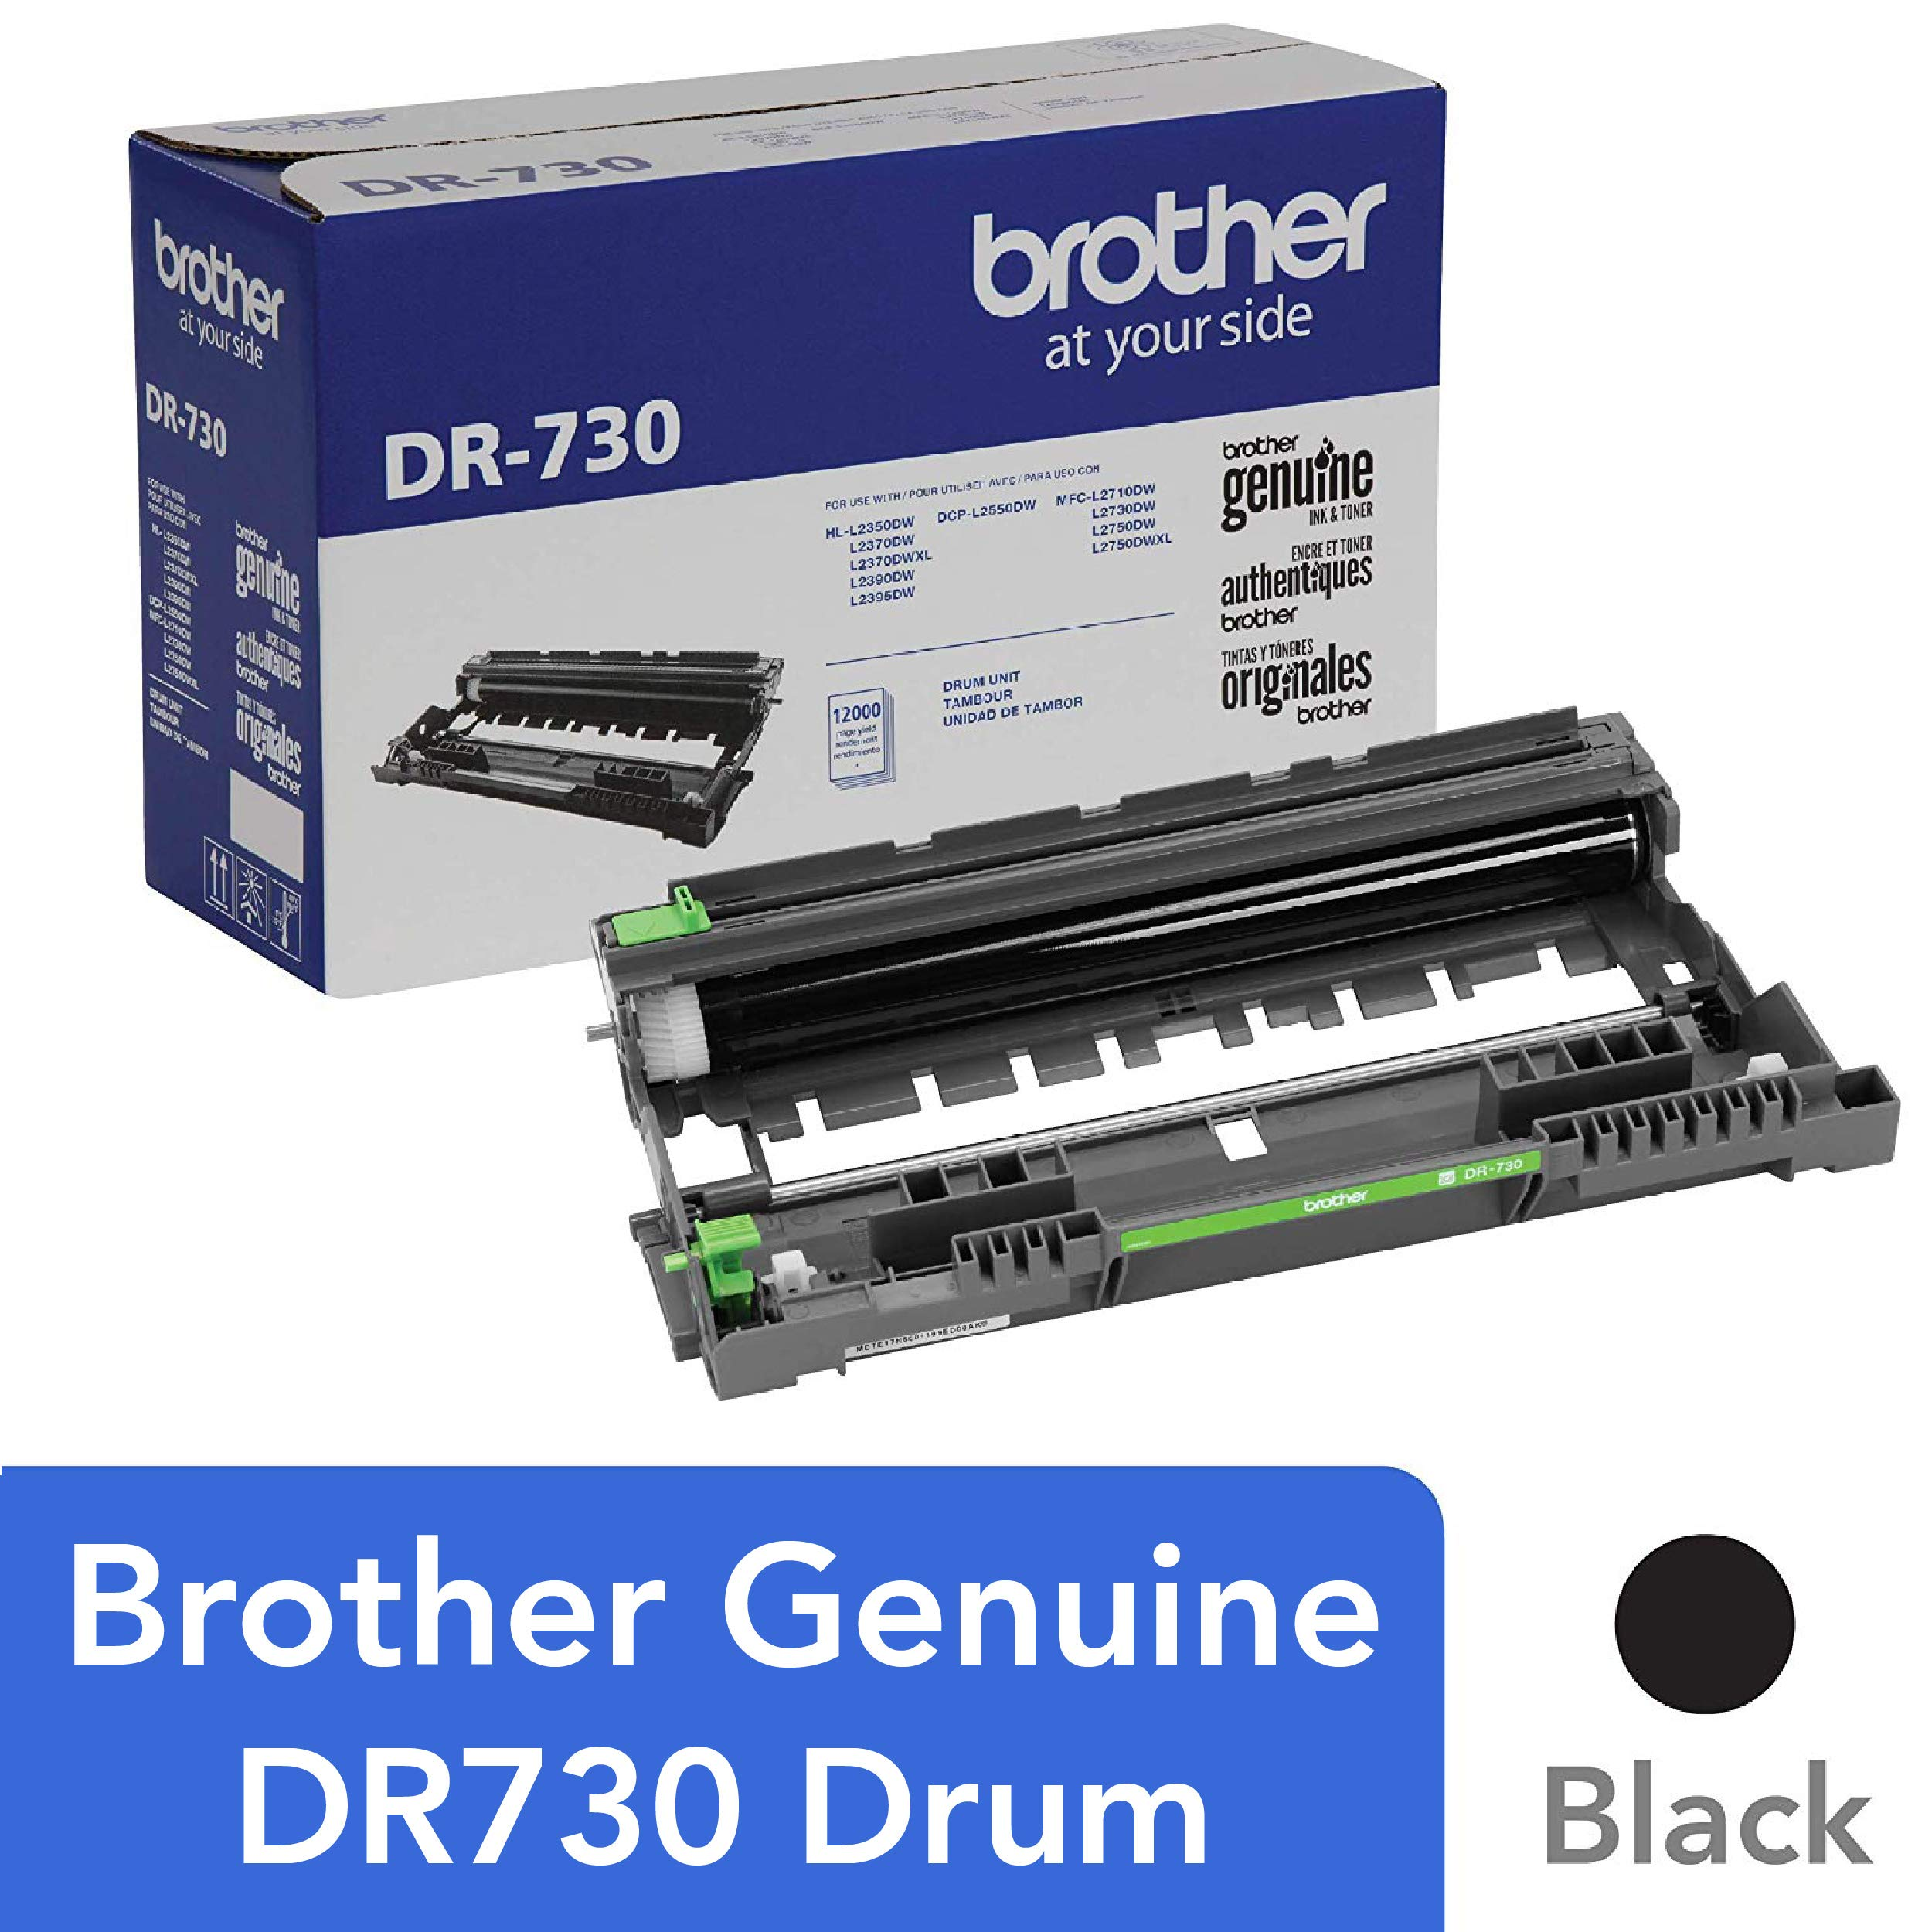 Brother Genuine Drum Unit, DR730, Seamless Integration, Yields Up to 12,000 Pages, Black